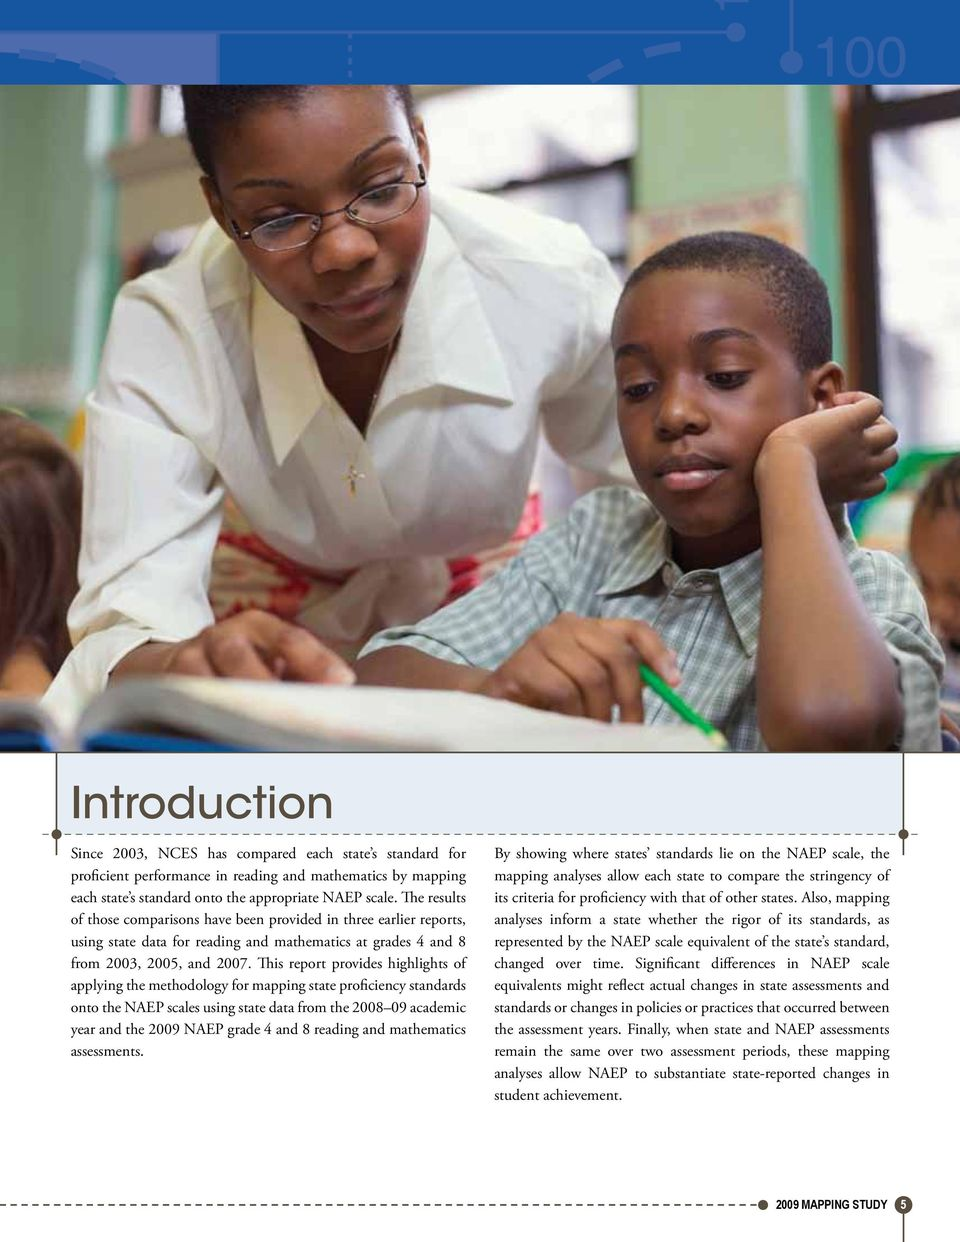 This report provides highlights of applying the methodology for mapping state proficiency standards onto the NAEP scales using state data from the 2008 09 academic year and the 2009 NAEP grade 4 and